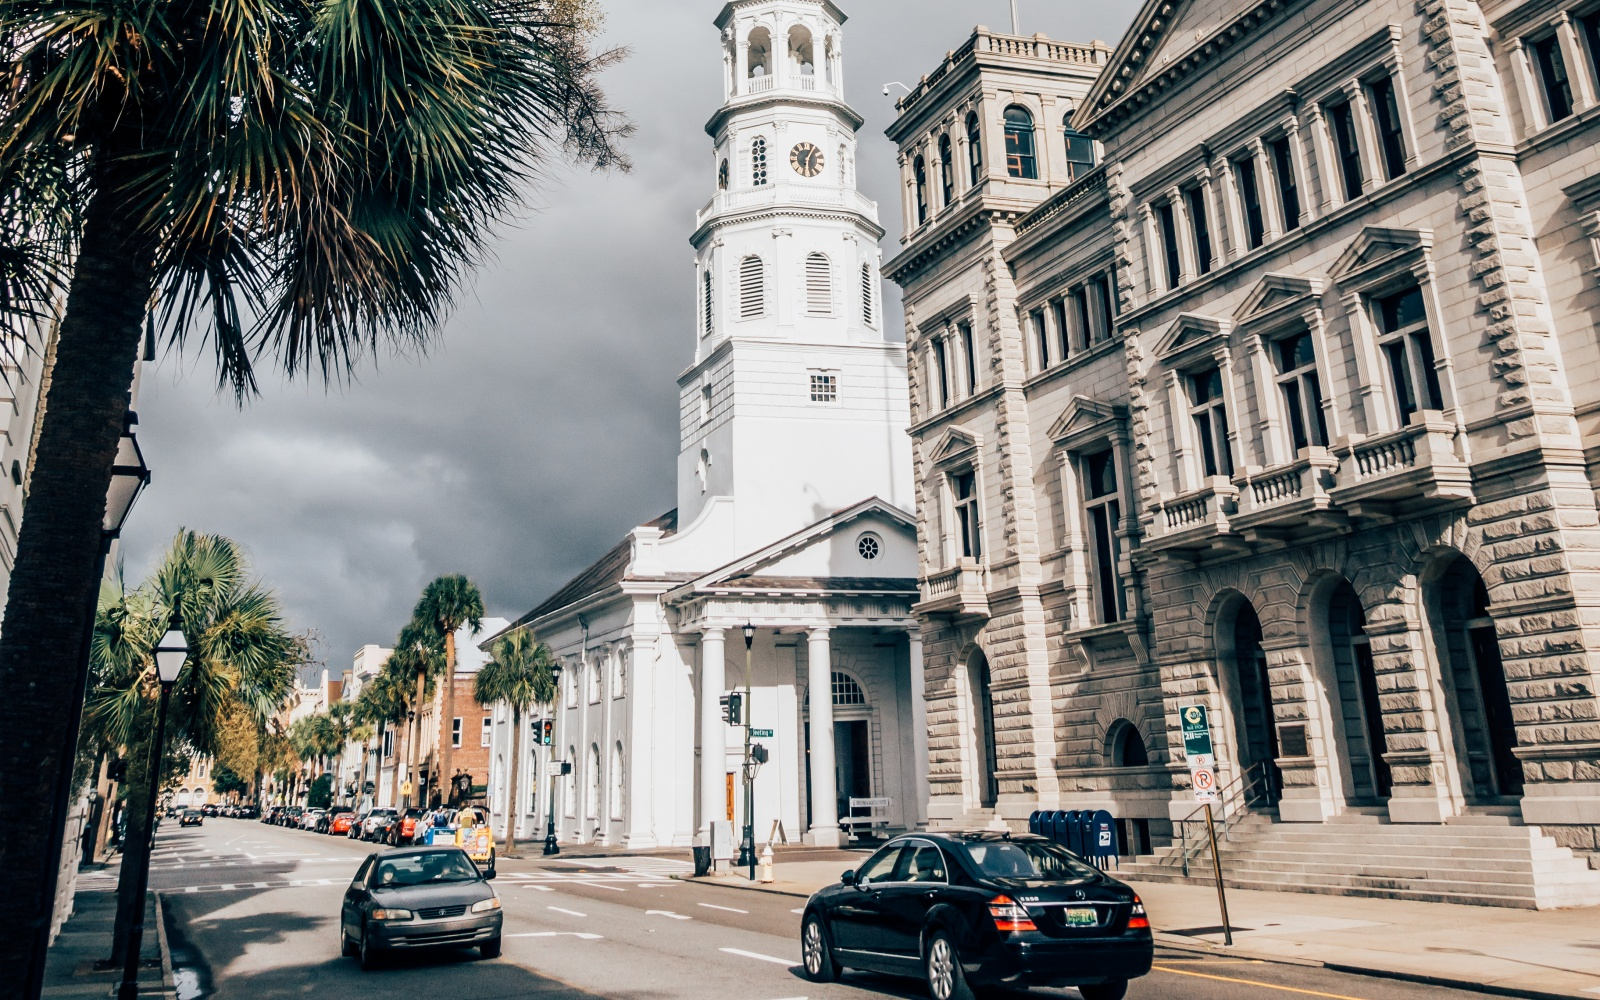 201411-a-definitive-guide-to-charleston